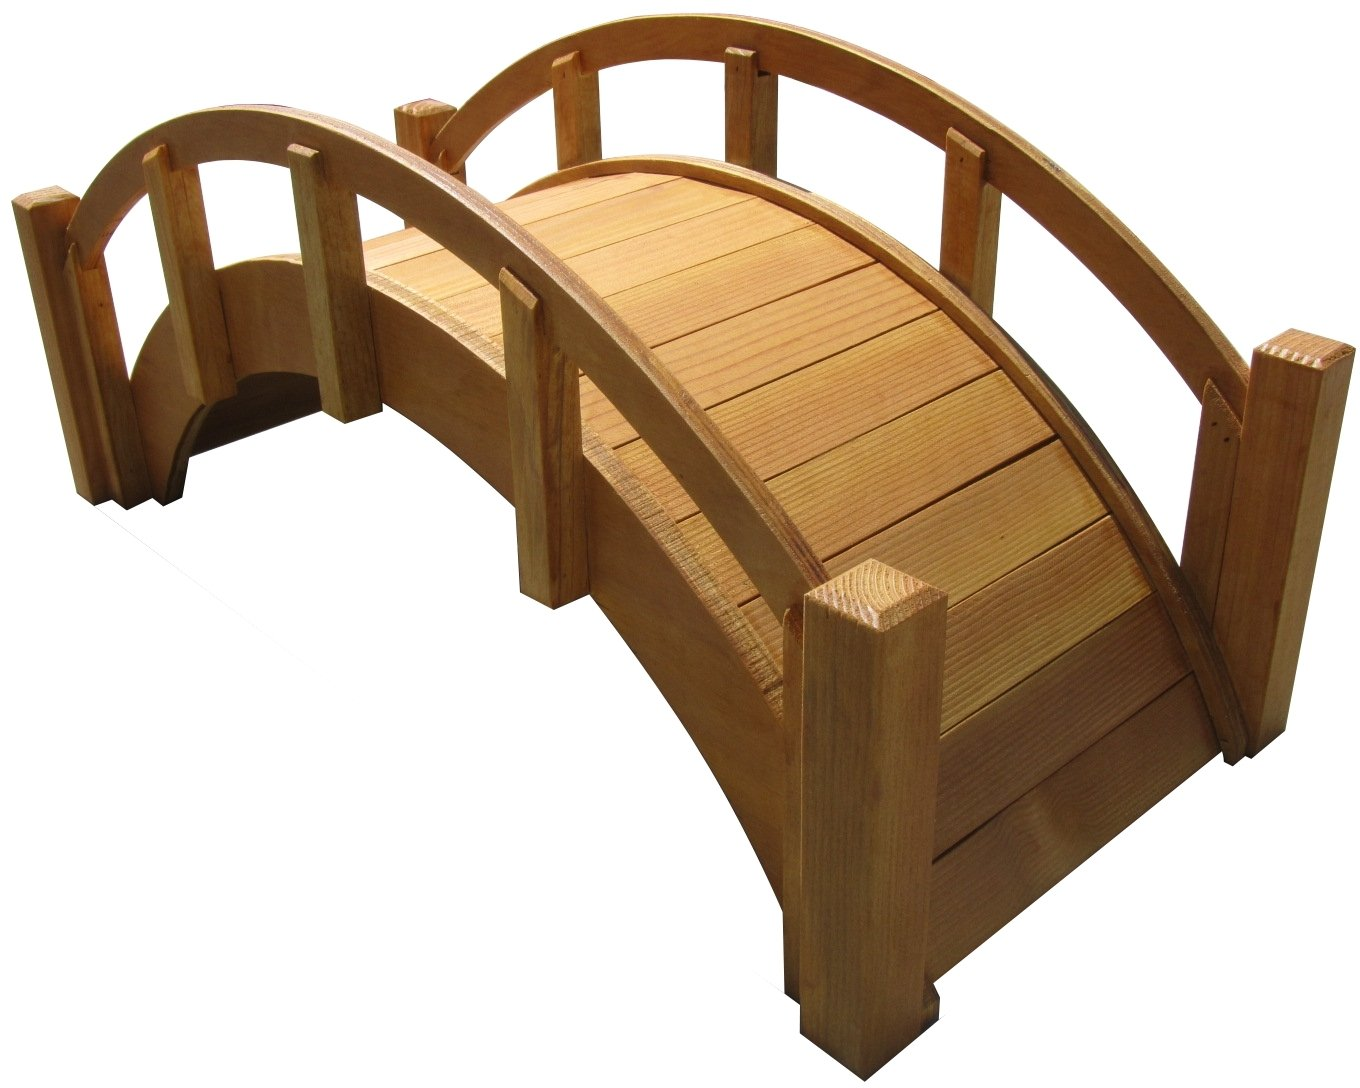 SamsGazebos Miniature Japanese Waterproofed Wood Garden Bridge, 25-Inch, Tan